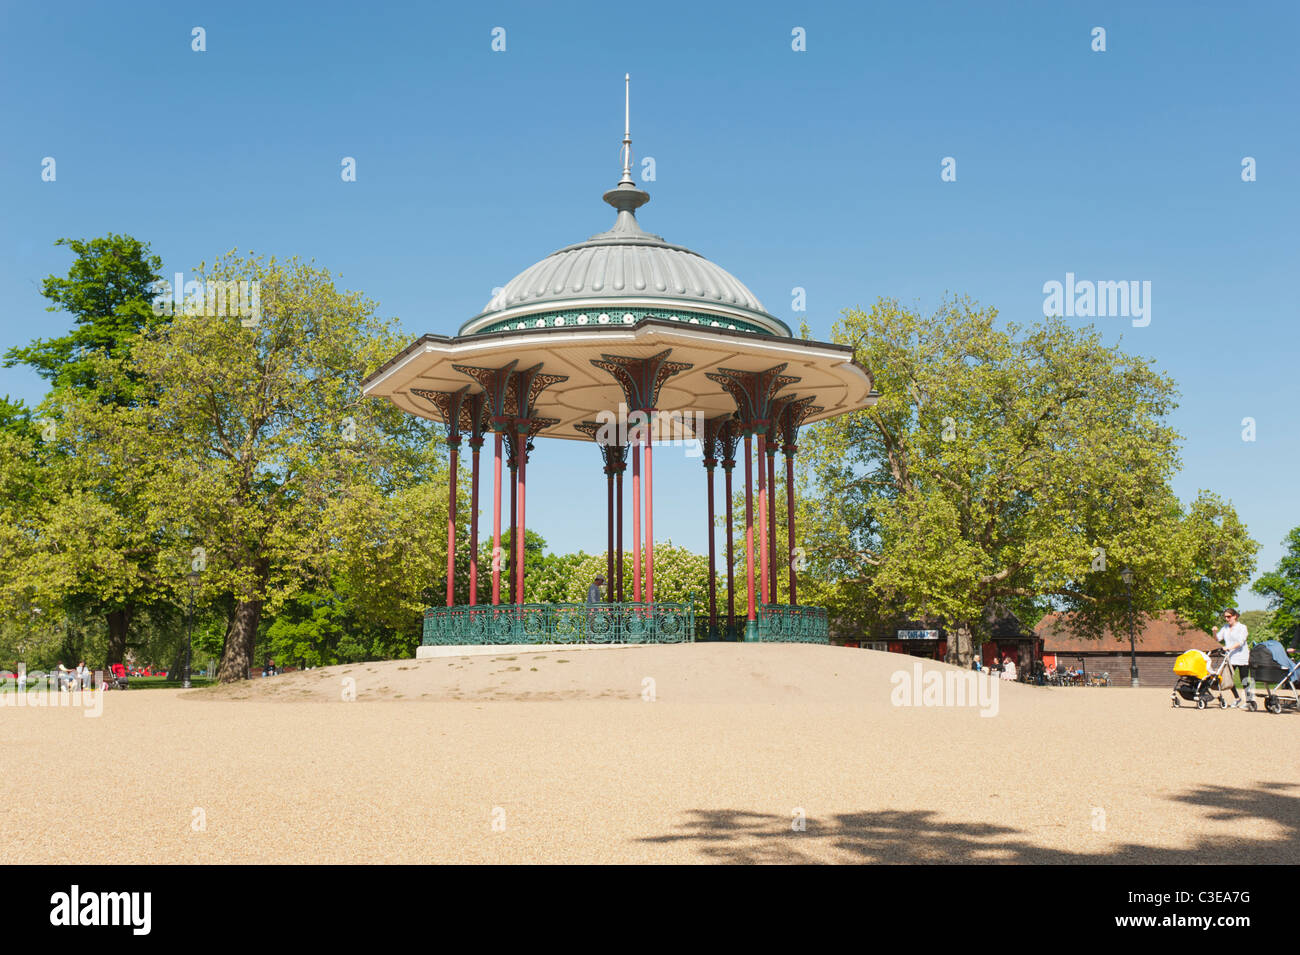 The Bandstand in the middle of Clapham Common, Lambeth, London, England, UK. - Stock Image